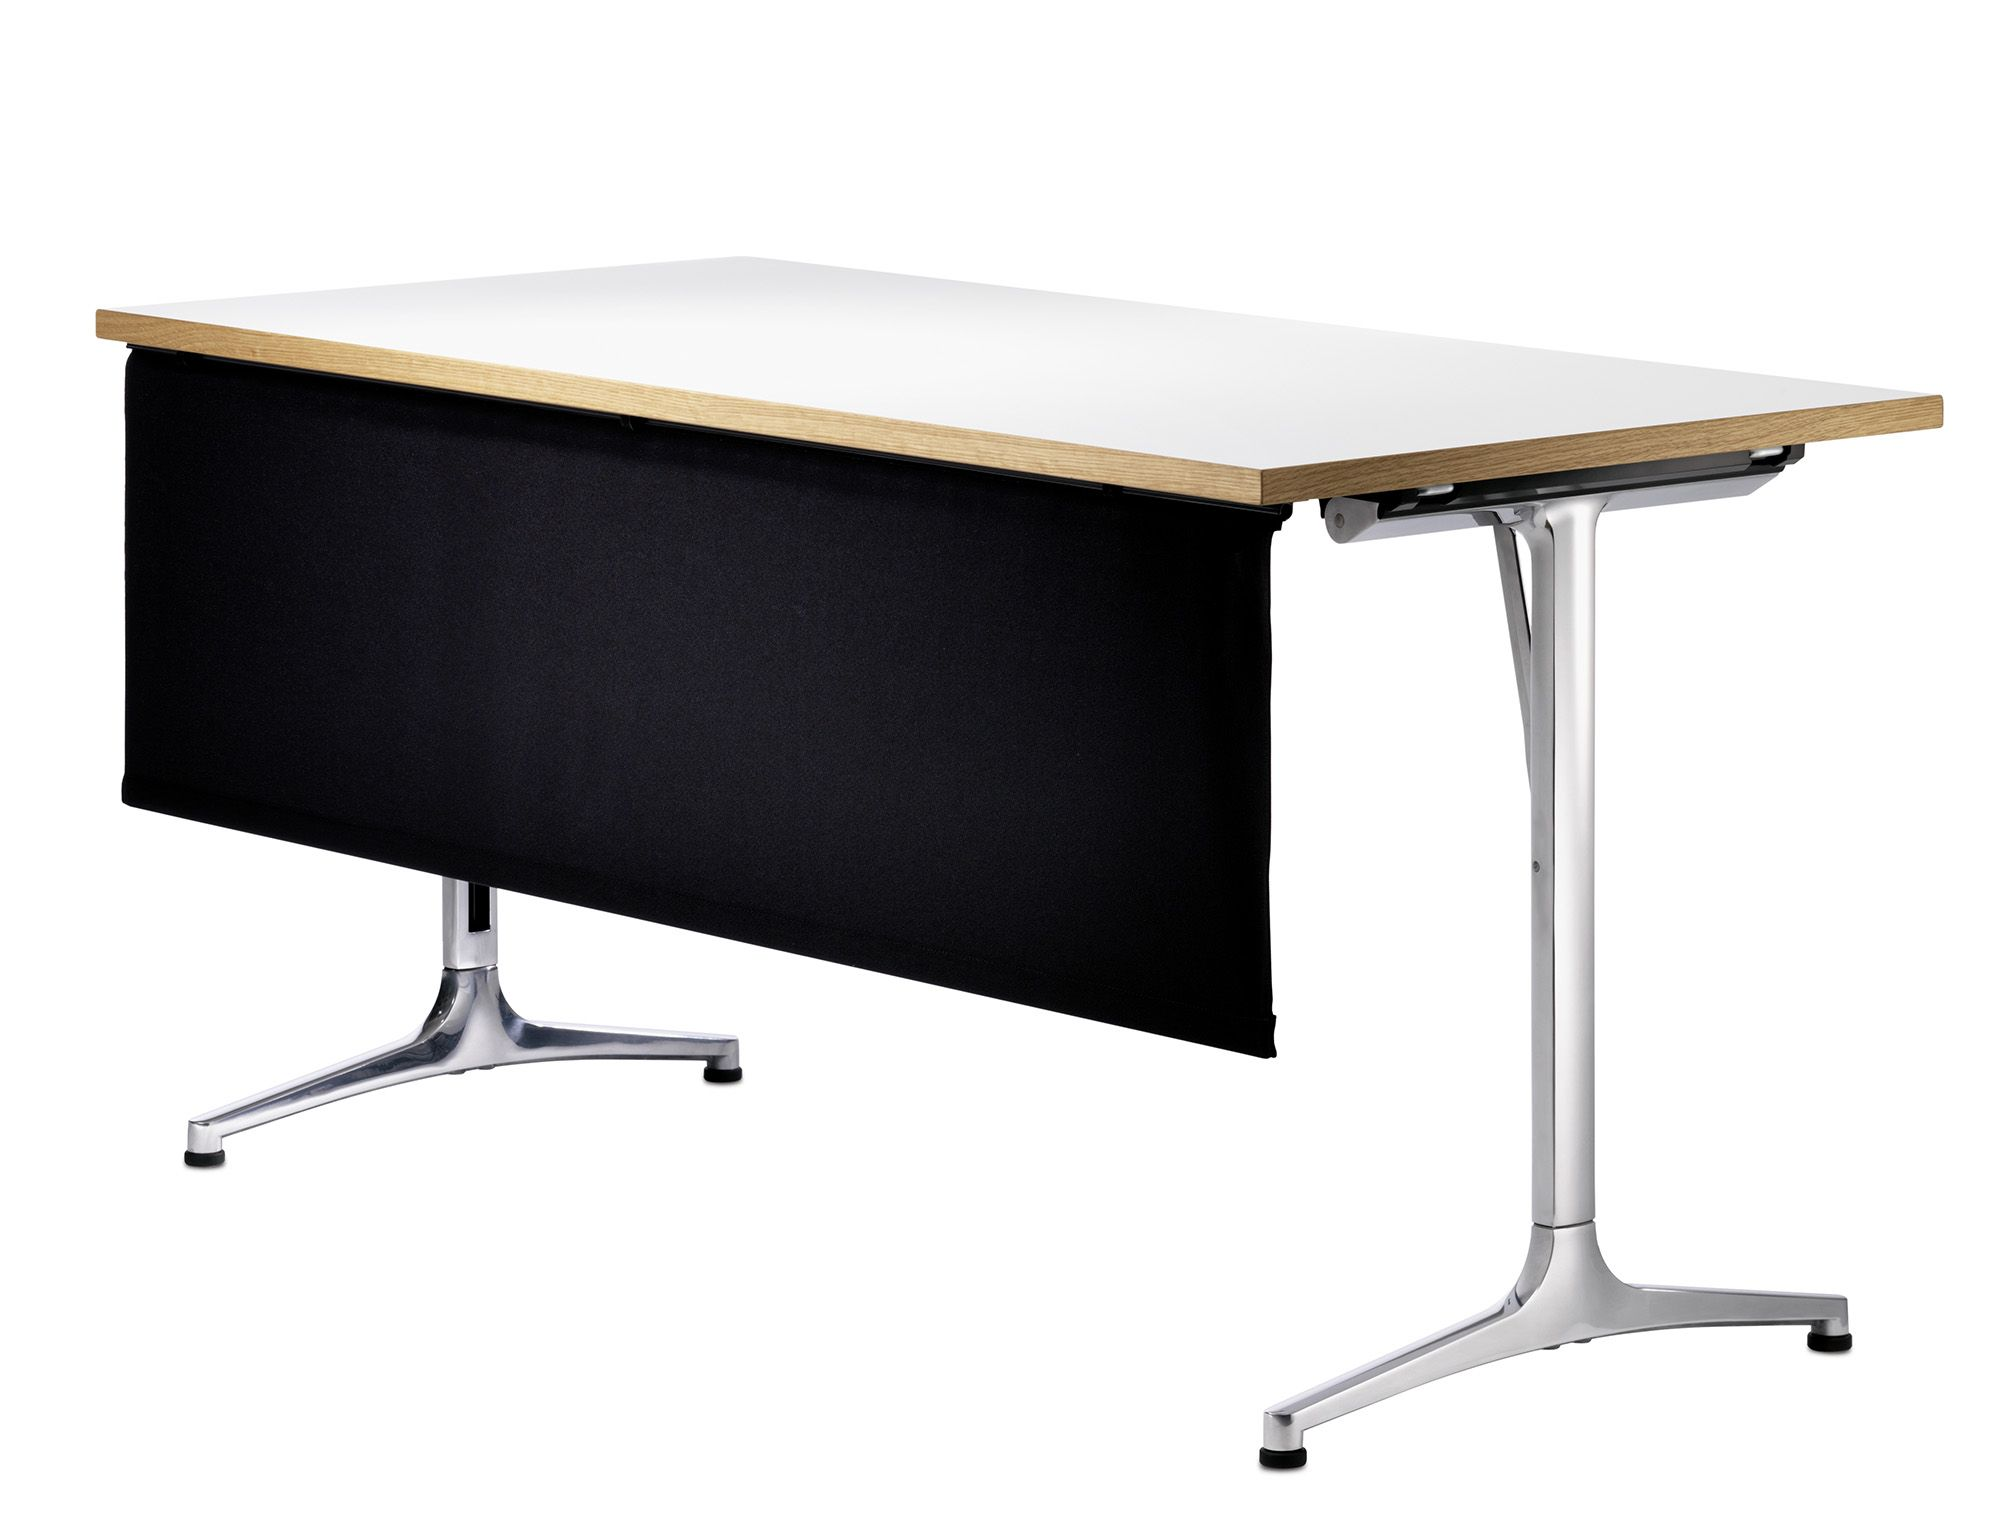 Max Conference Table Range 460 465 Design By Andreas Storiko